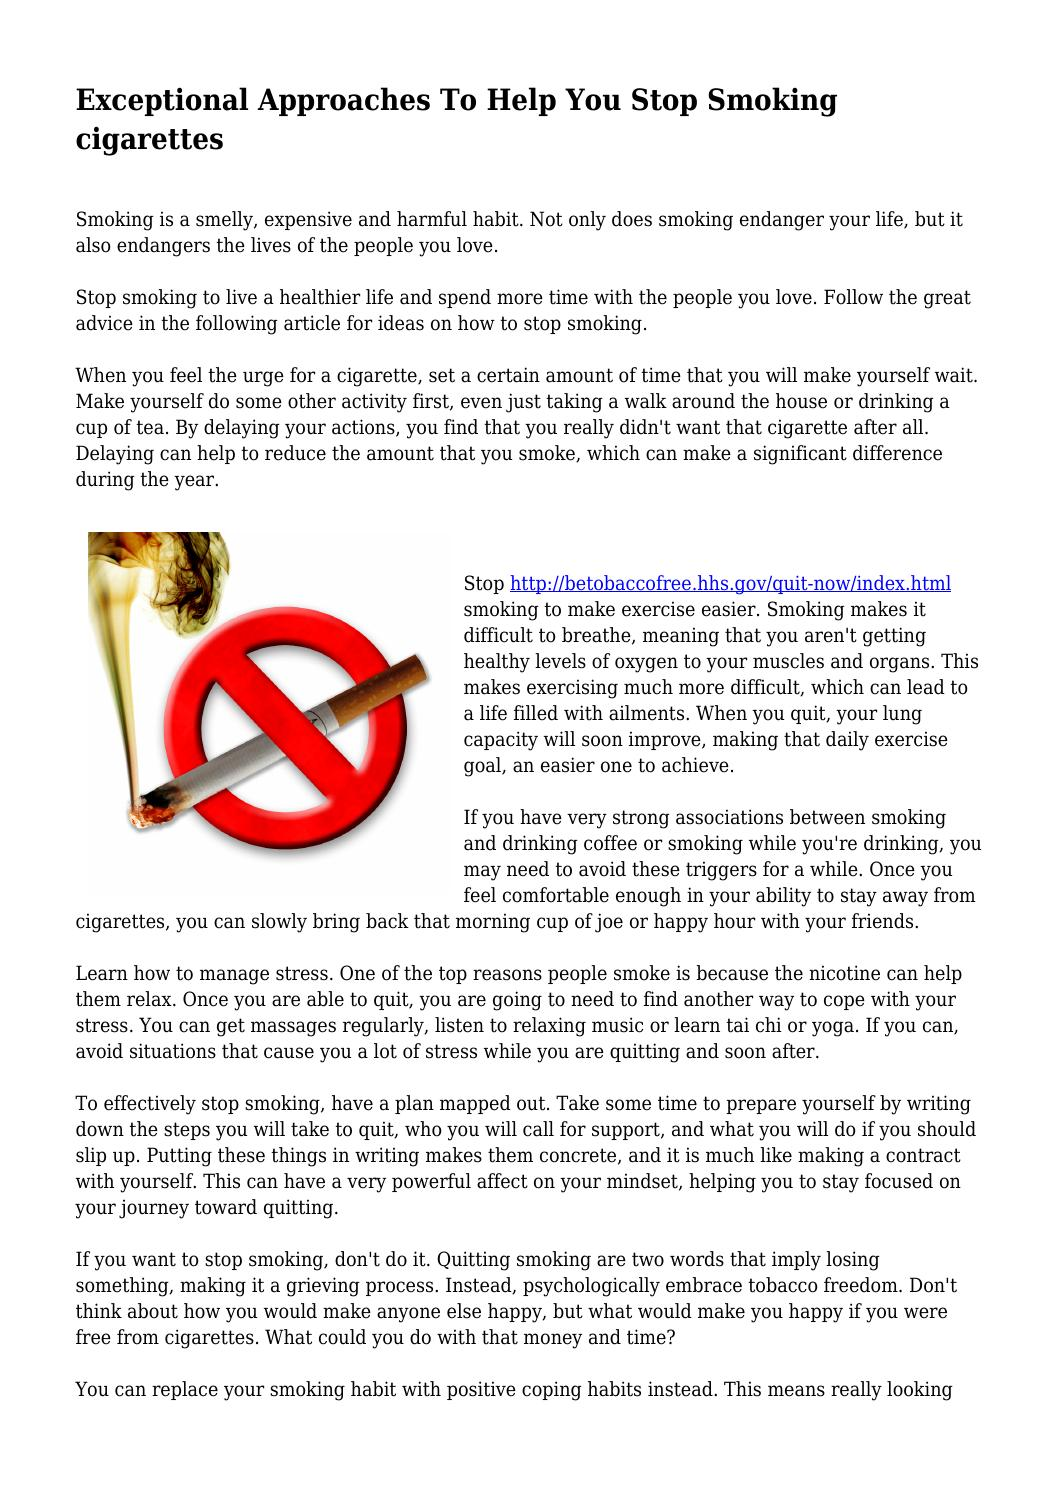 Exceptional Approaches To Help You Stop Smoking cigarettes